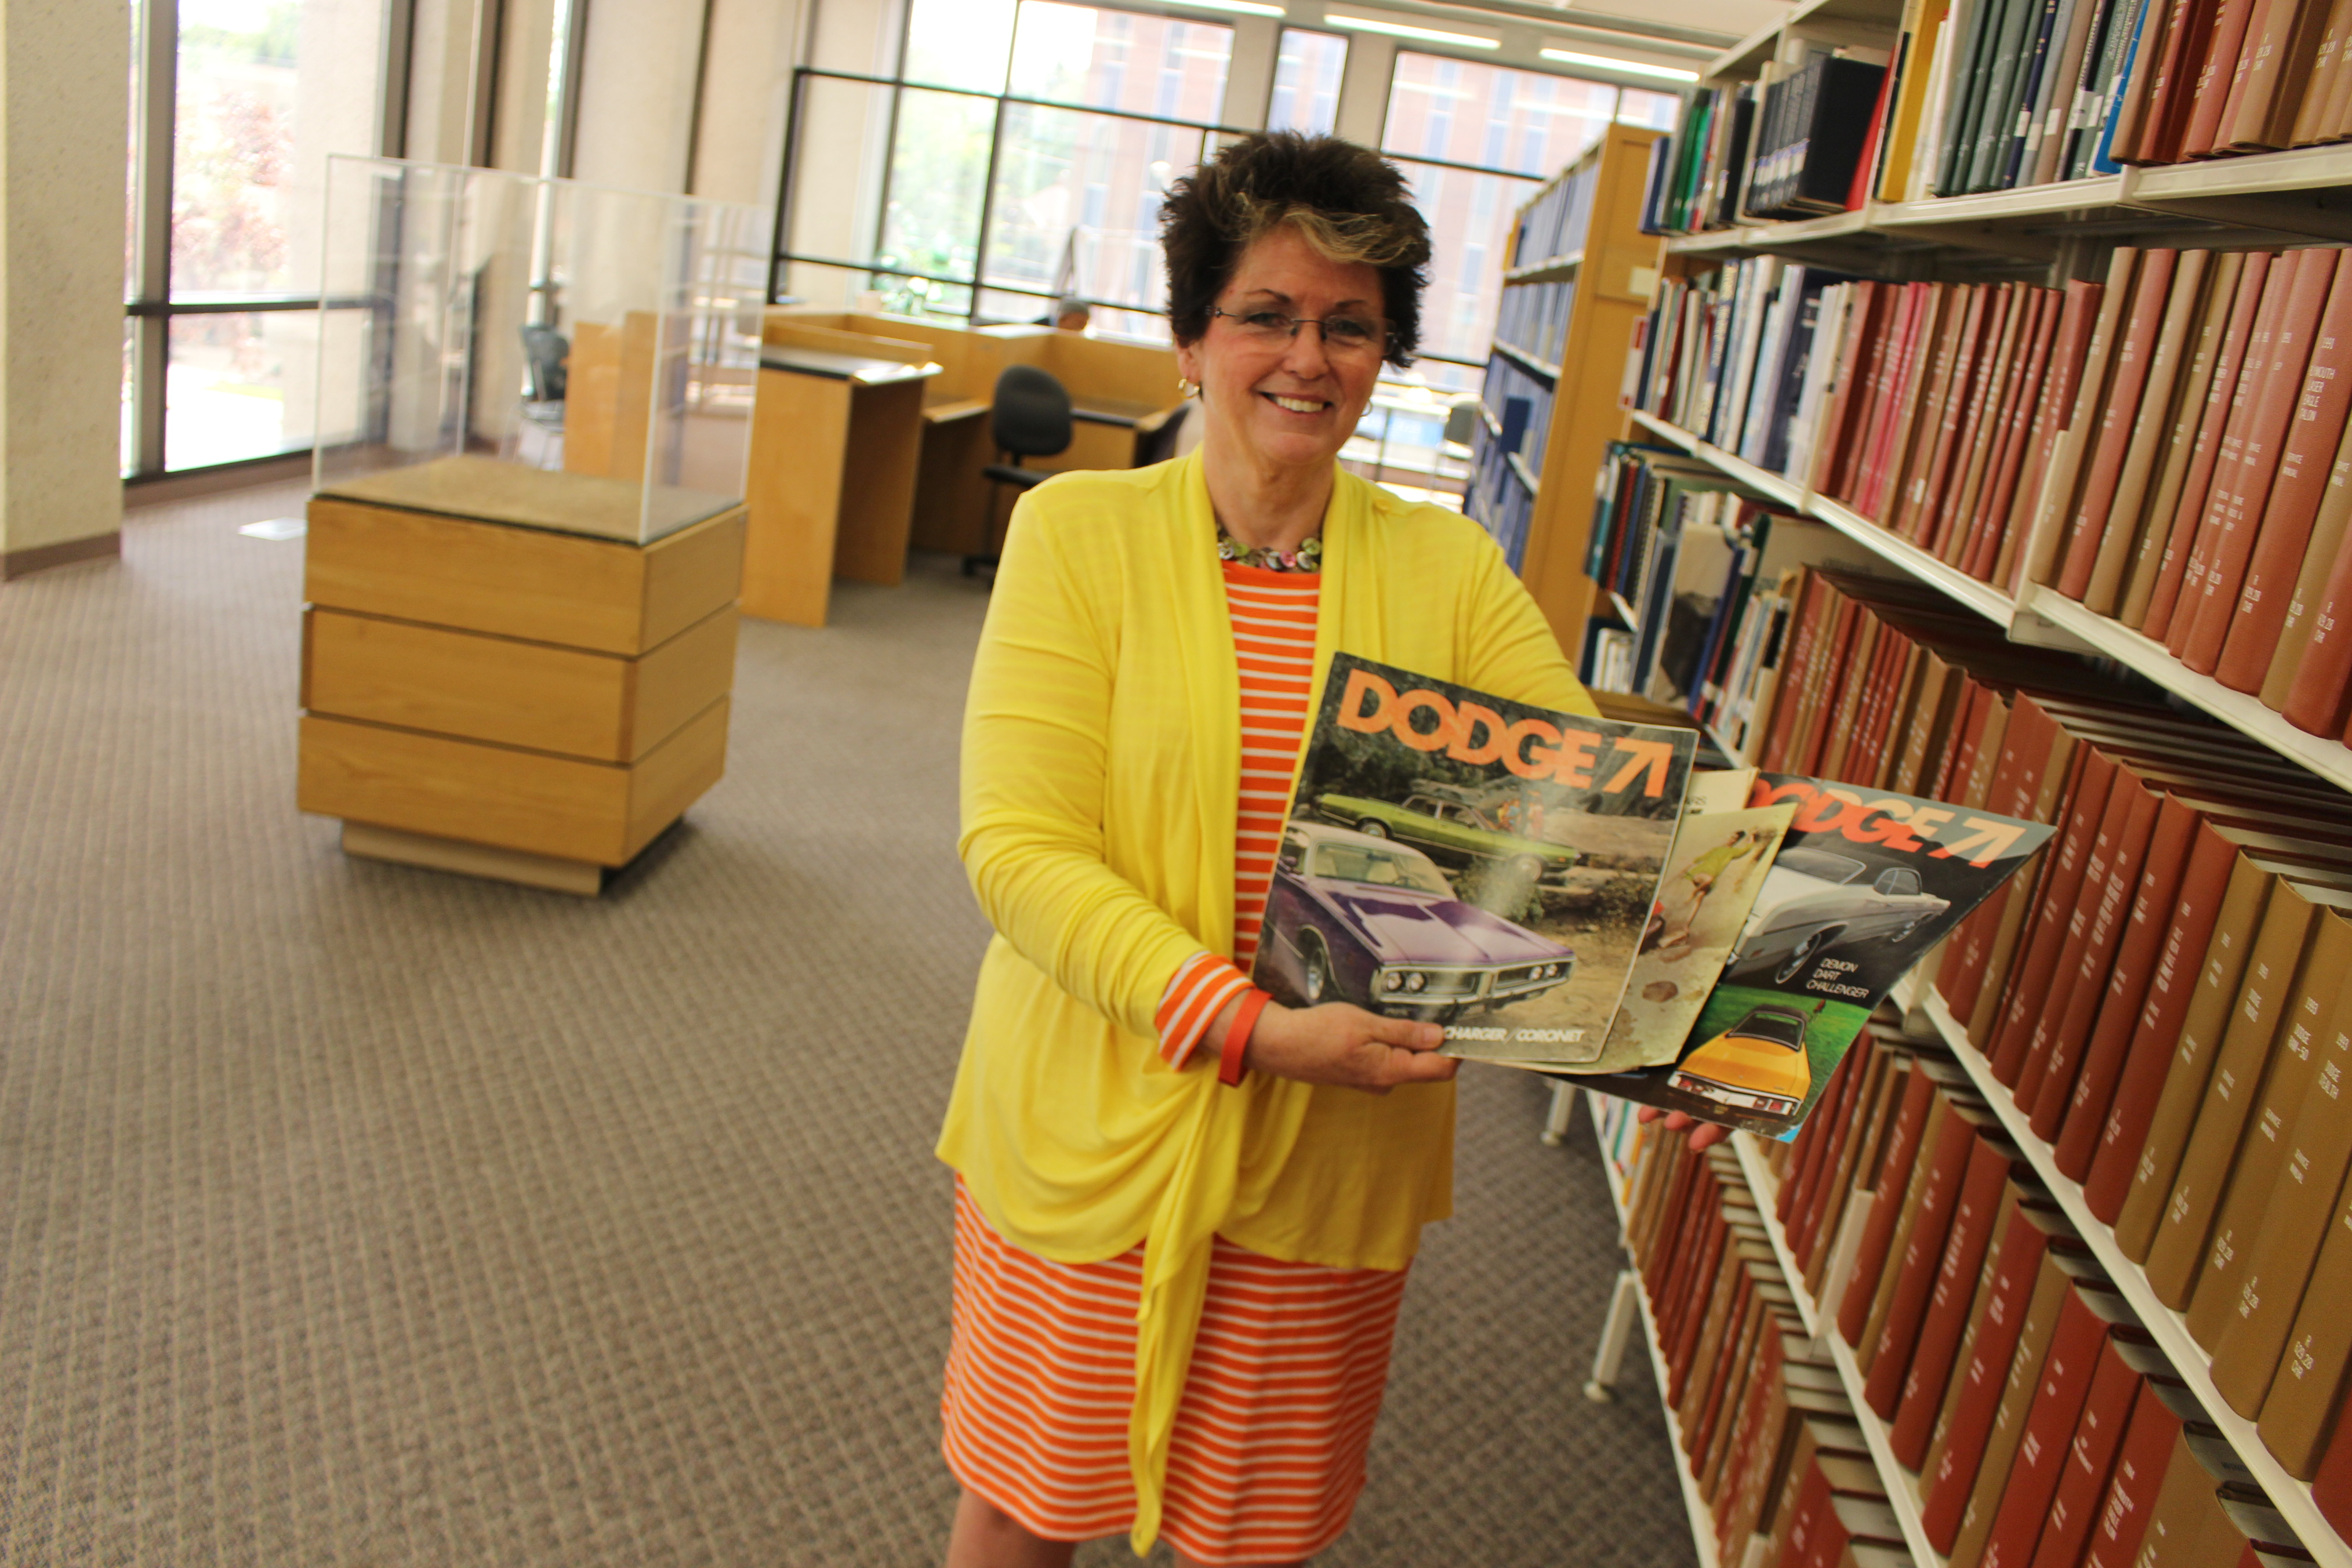 Windsor Public Library CEO Kitty Pope holds some material that will be on display at the new automotive exhibit, July 23, 2015. (Photo by Jason Viau)